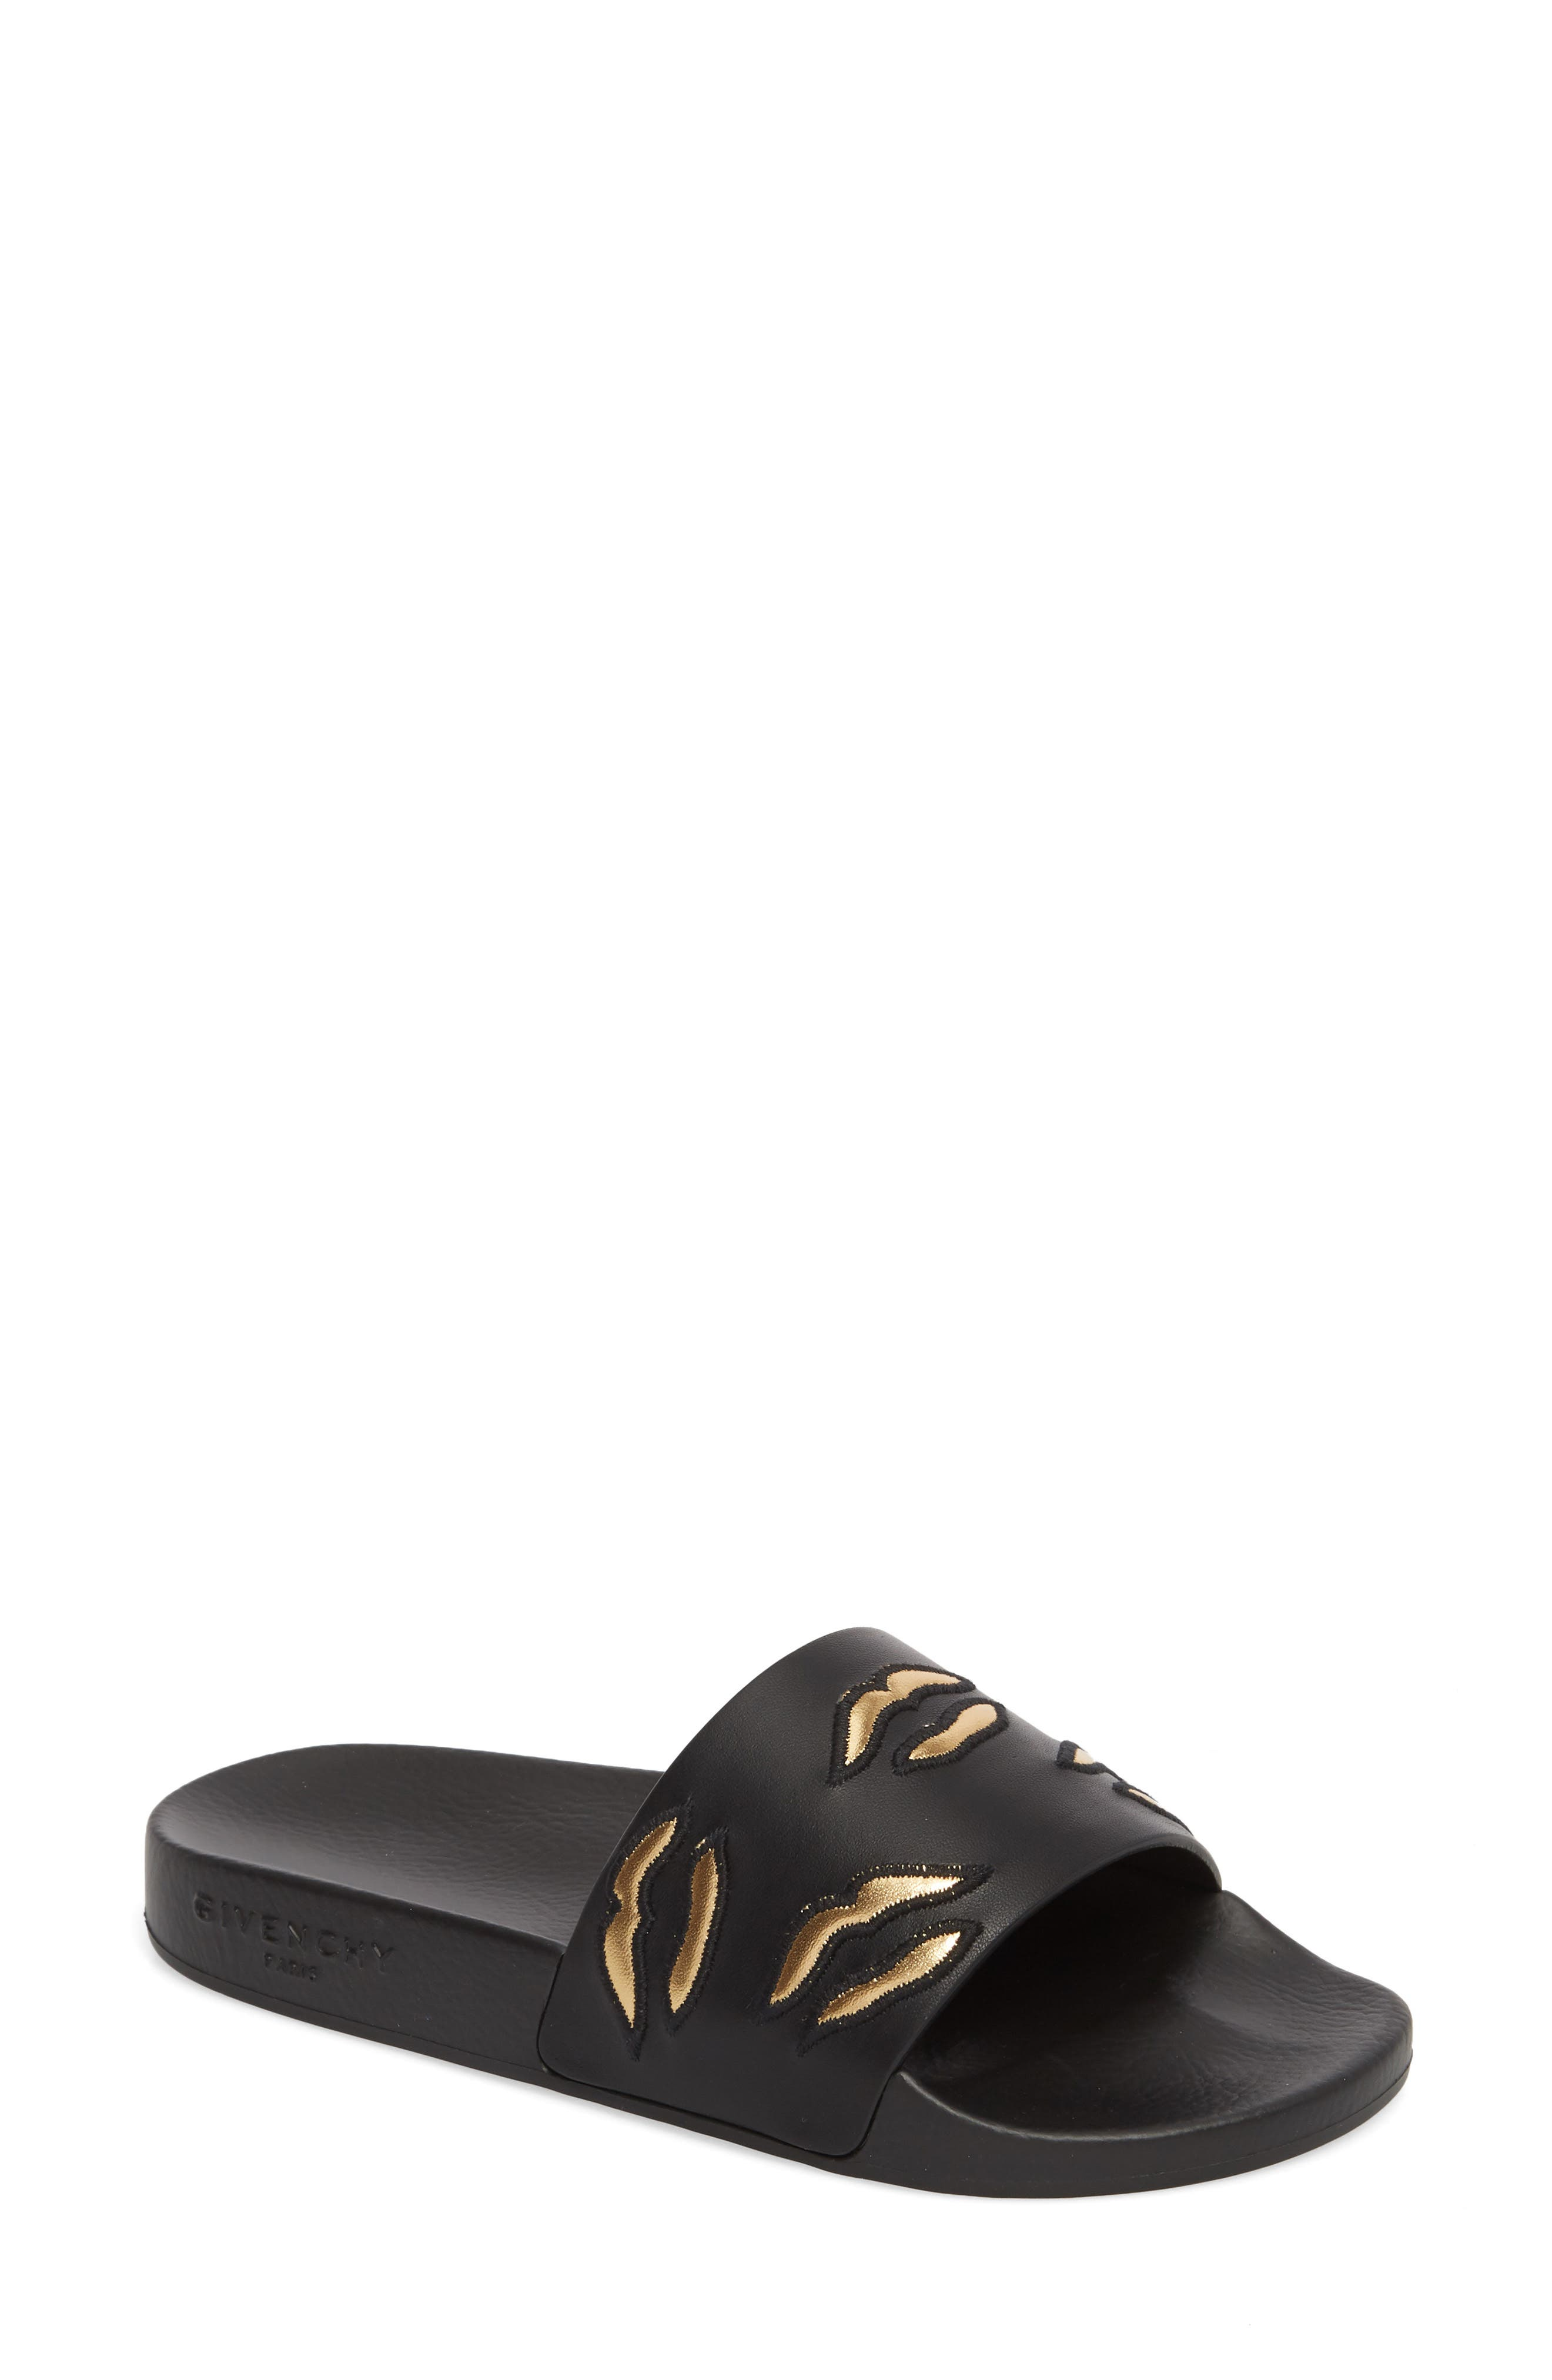 Kiss Slide Sandal,                         Main,                         color, BLACK/ GOLD